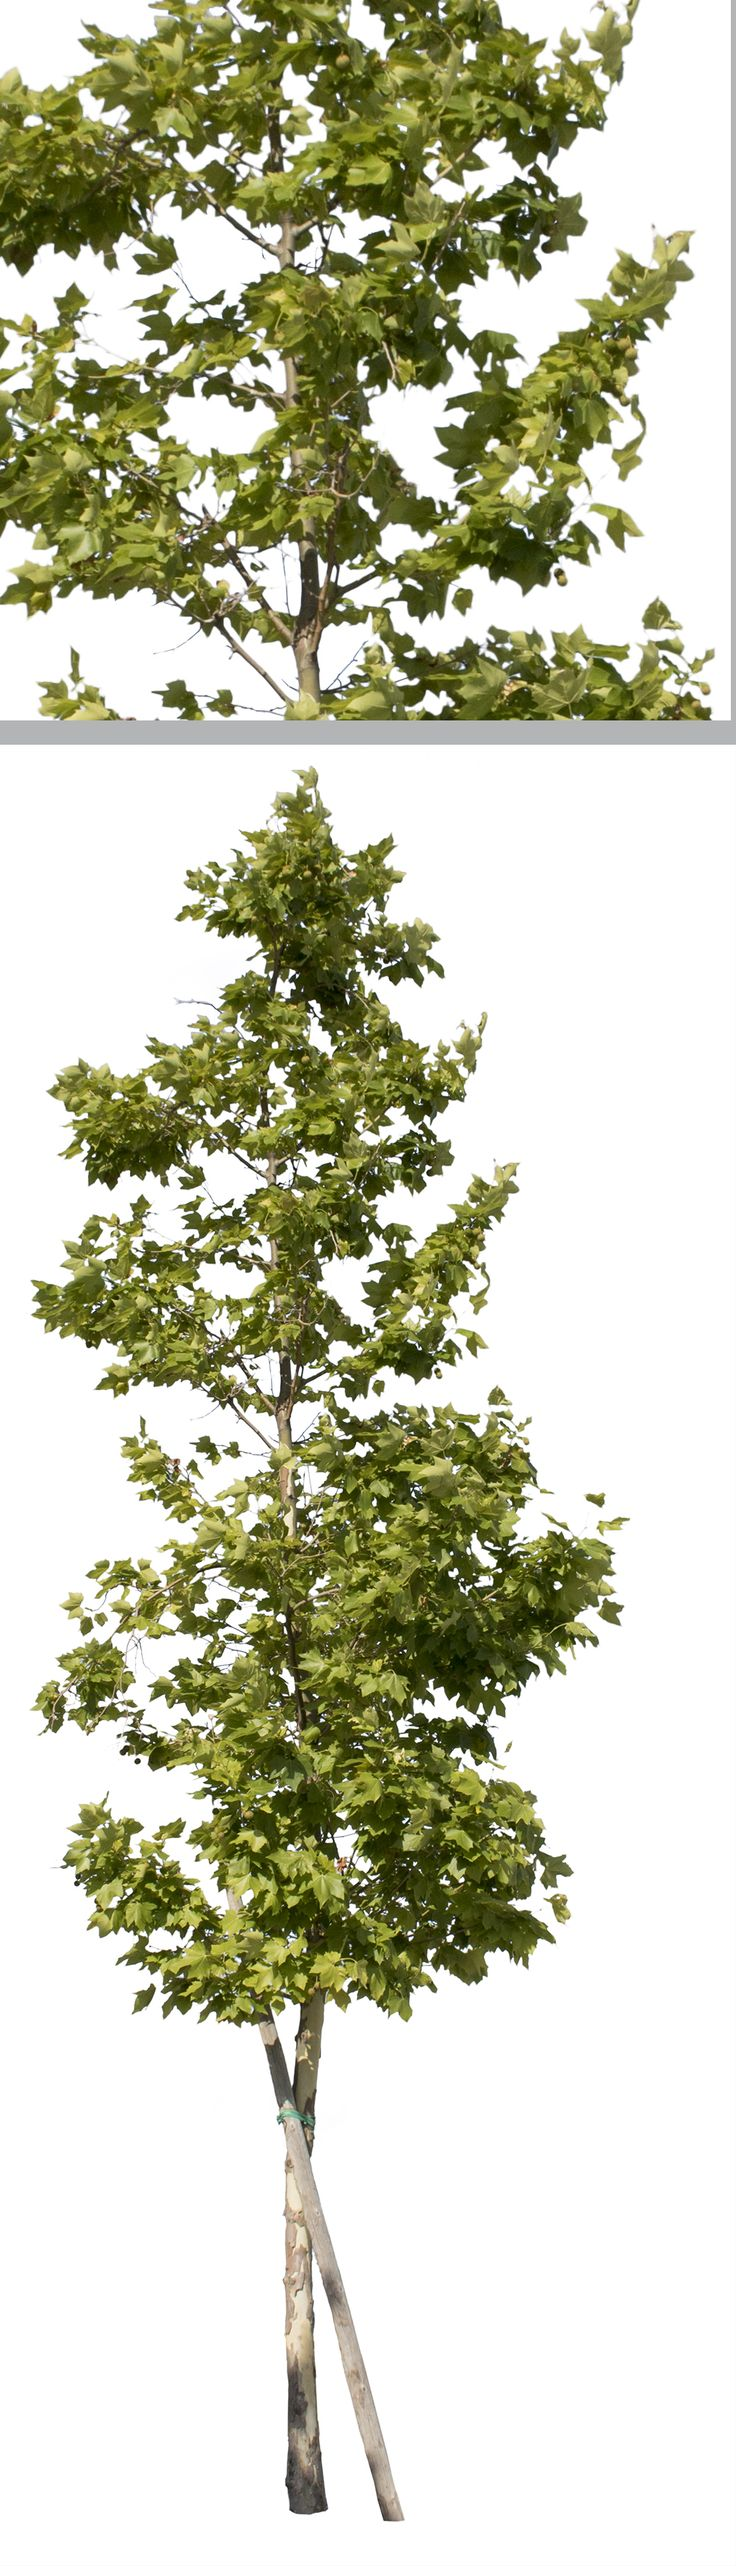 FREE DOWNLOAD FOR 10 DAYS.  1863 X 4079 Pixels. PNG. Transparent background.  Platanus occidentalis Small plane tree.